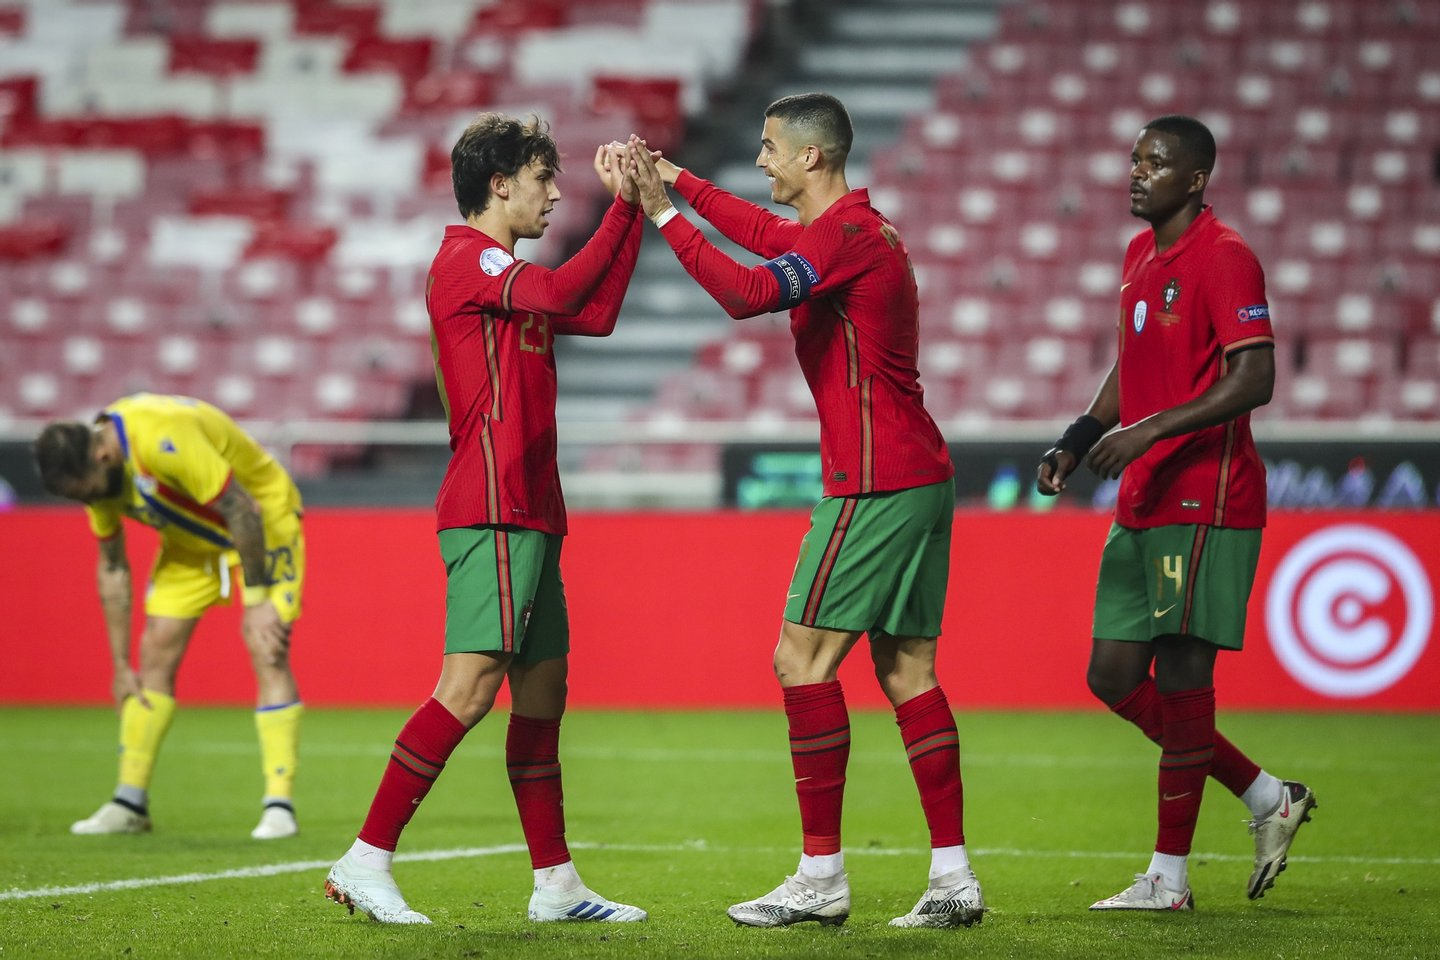 Portugal national team player Joao Felix (C-L) and Cristiano Ronaldo (C-R) celebrate after scoring a goal during the friendly soccer match between Portugal and Andorra, held at Luz stadium in Lisbon, Portugal, 11 November 2020. JOSE SENA GOULAO/LUSA